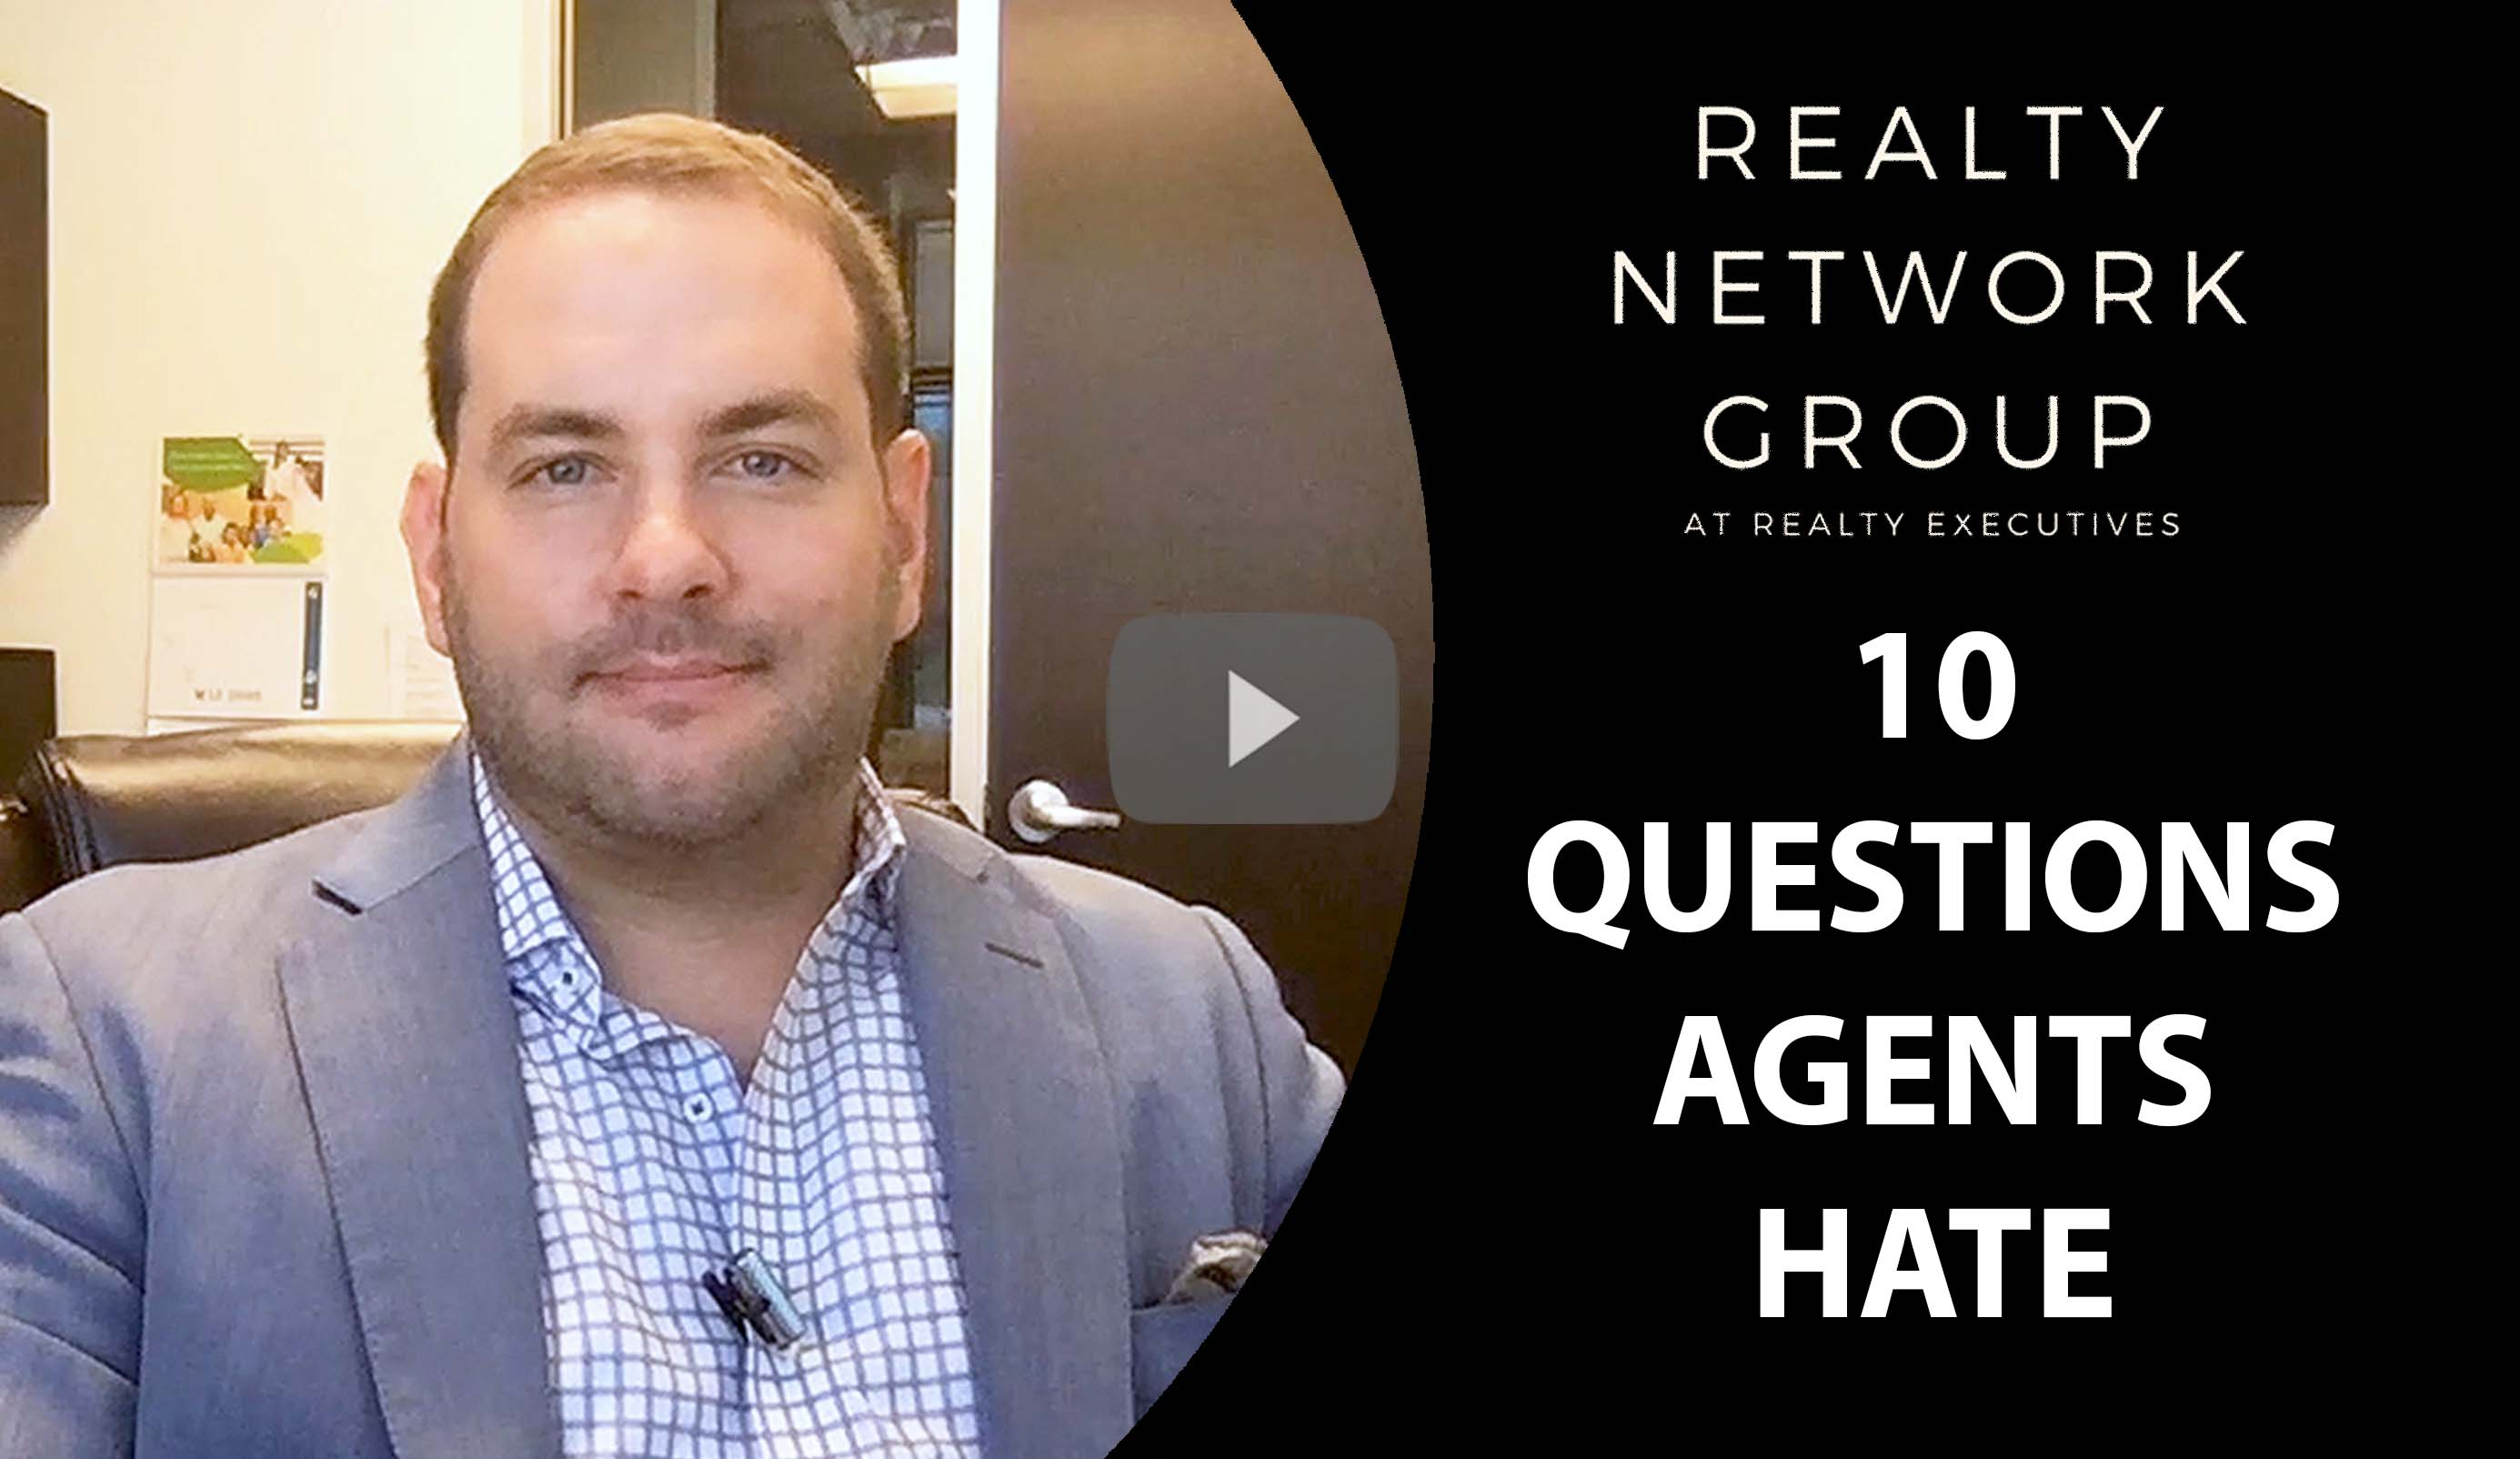 What Should You Ask an Agent You're Looking to Hire?